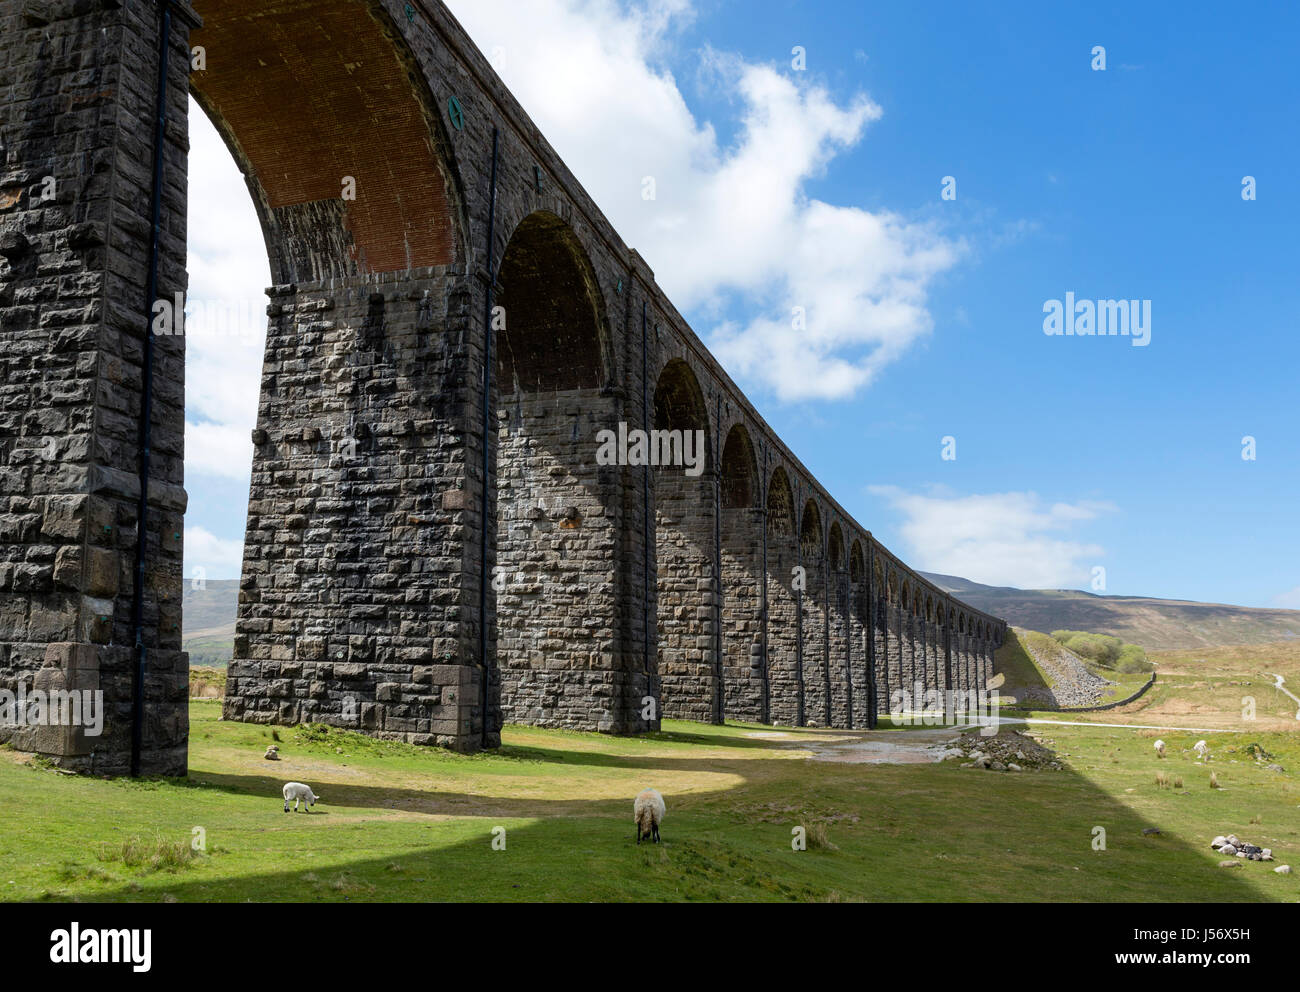 Ribblehead Viaduct, Yorkshire Dales National Park, North Yorkshire, England, UK - Stock Image